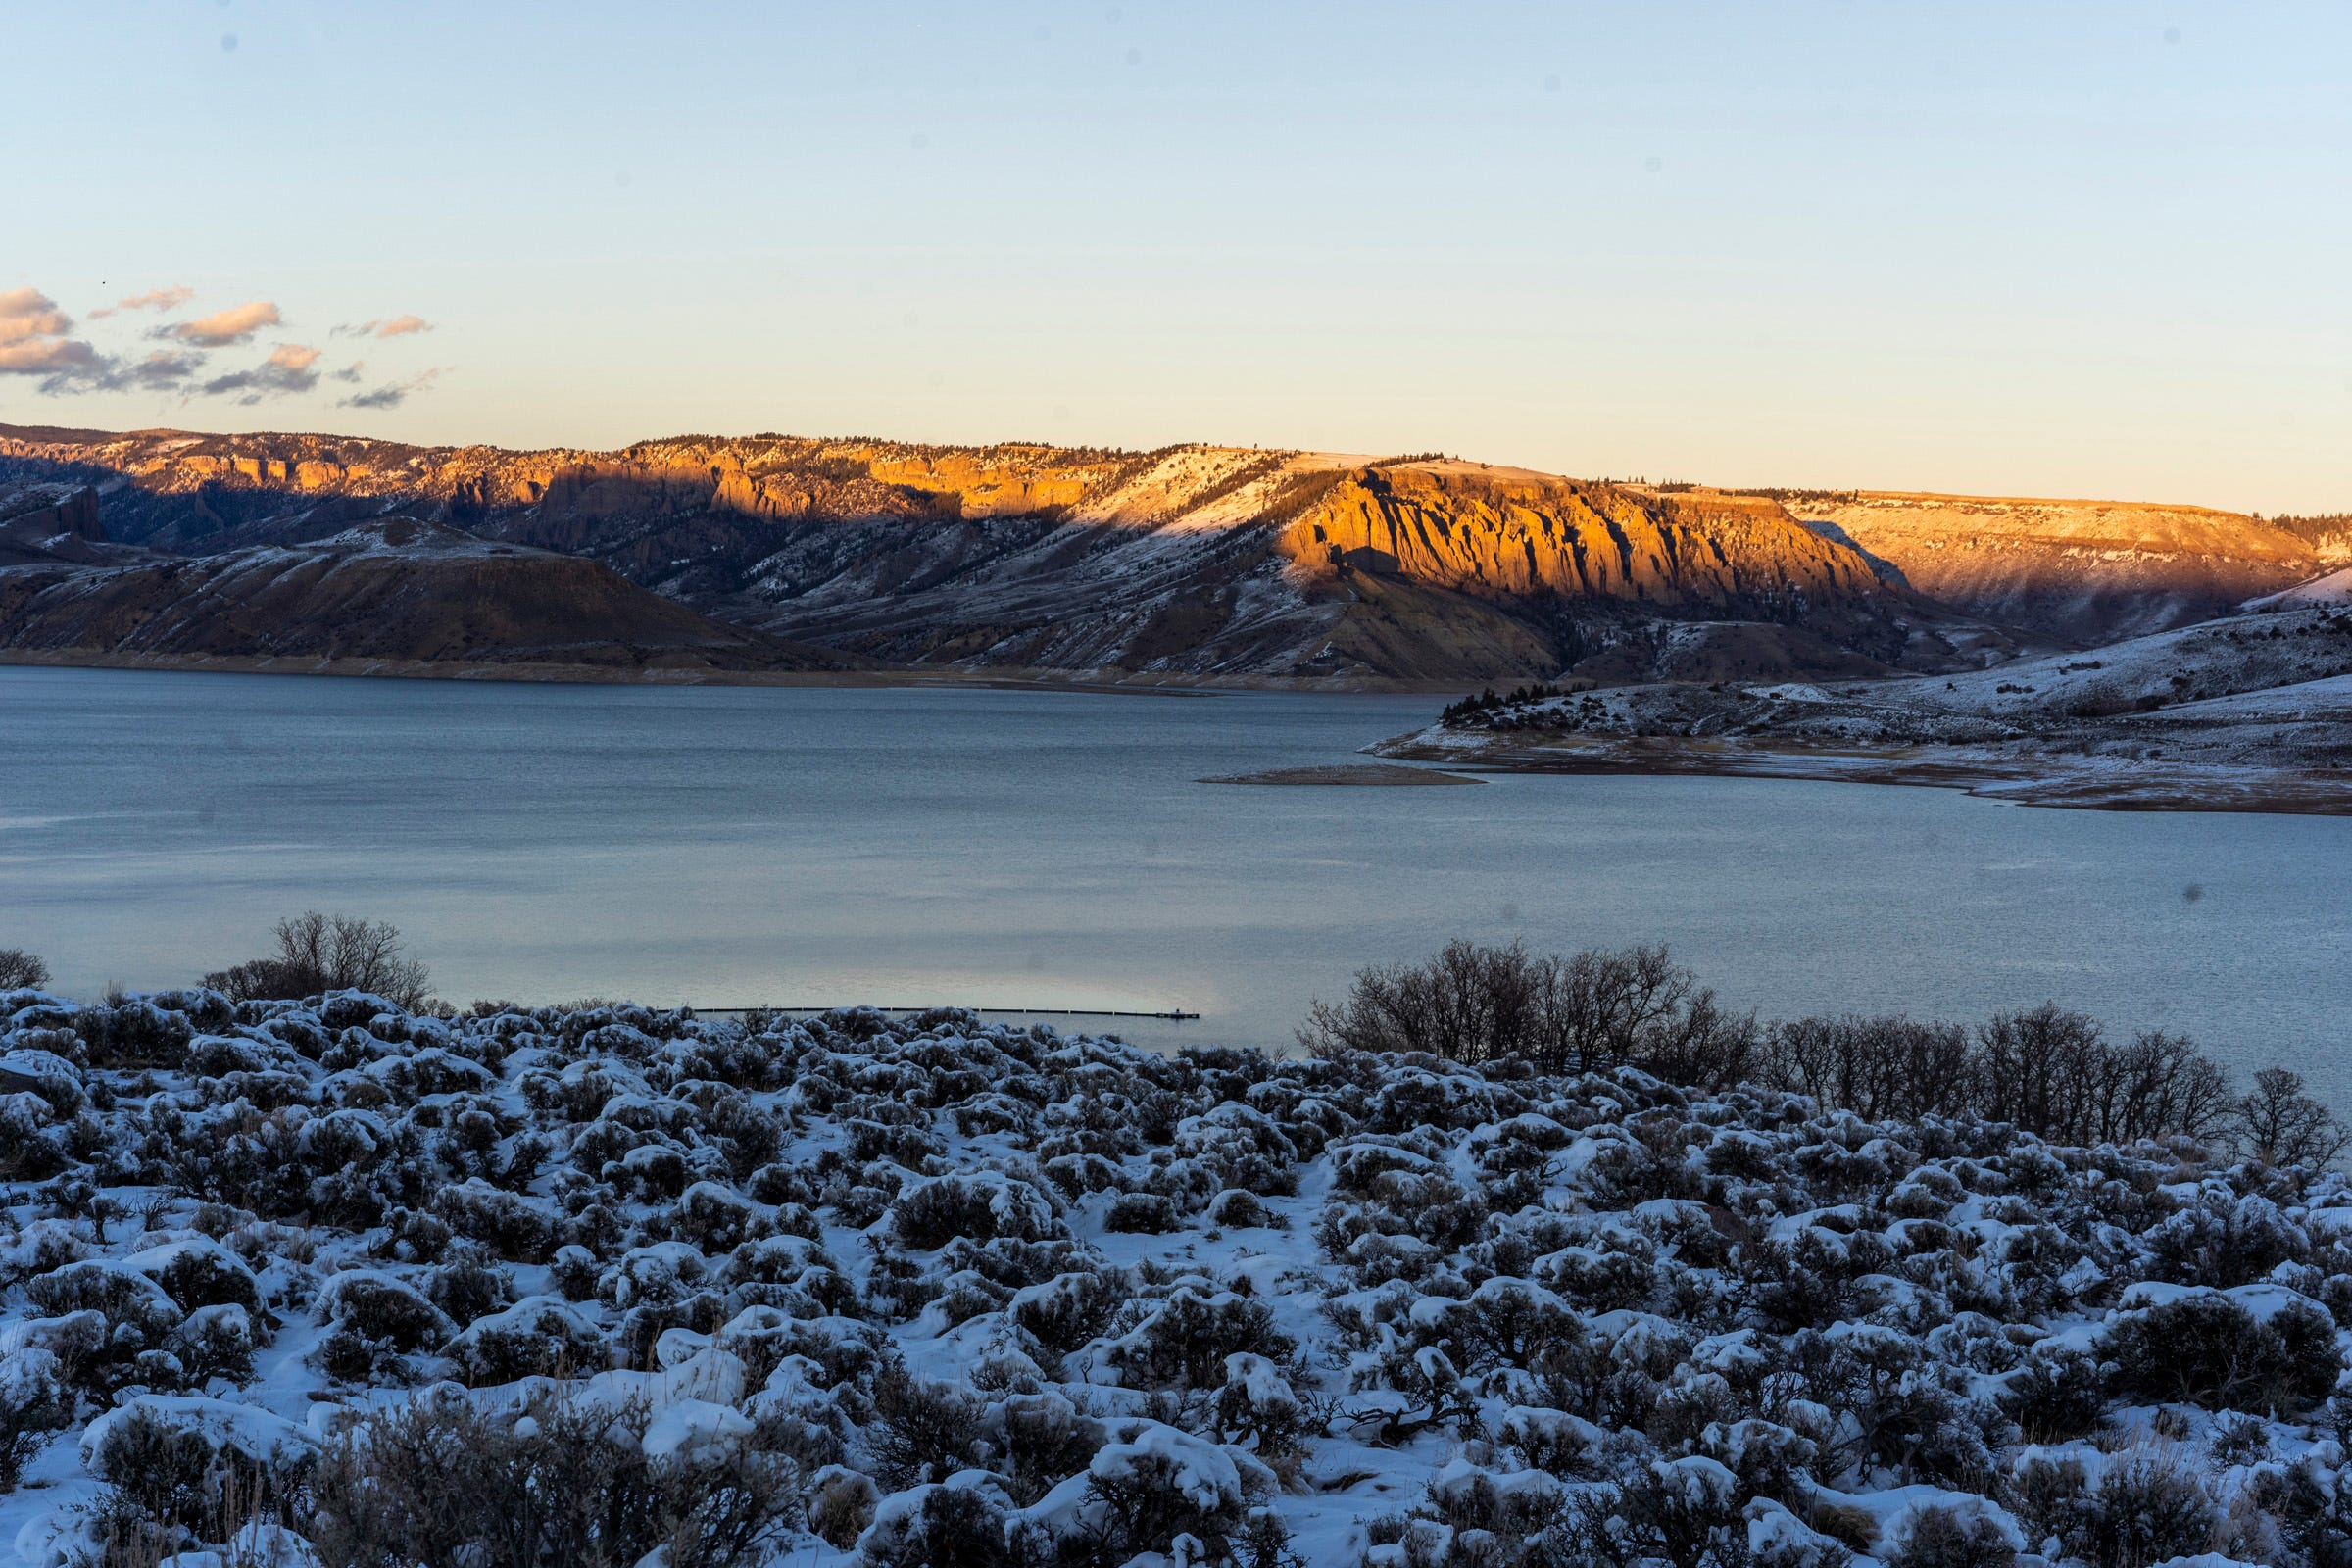 Blue Mesa Reservoir holds water from the Gunnison River, a major tributary of the Colorado River. The levels of the reservoir now stand at 48% of full capacity after a hot, dry year.